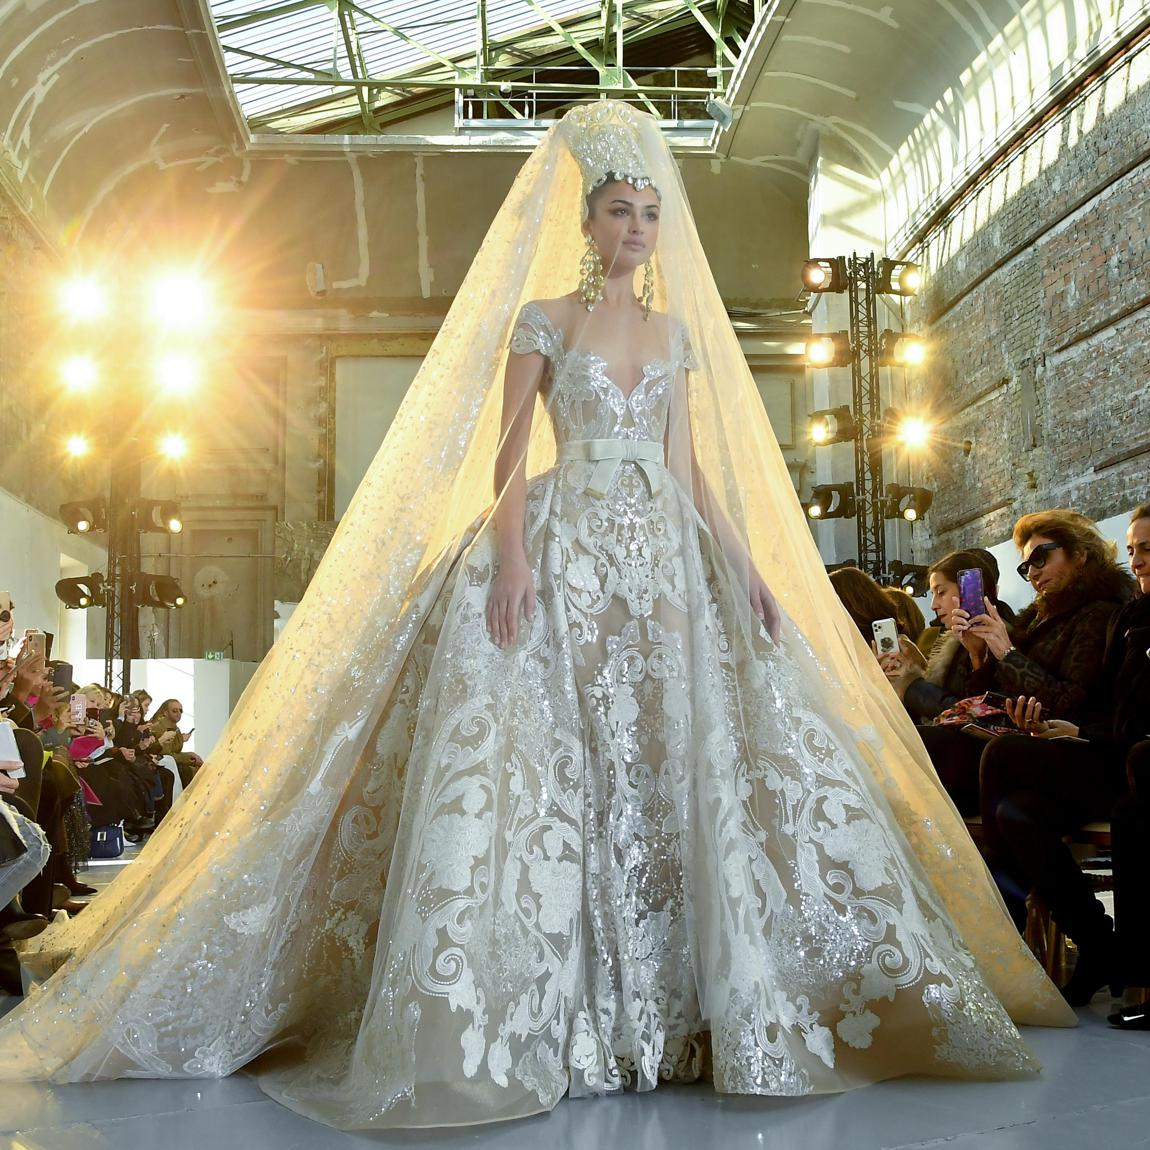 Ecr Wedding In A Week Facebook: 9 Of The Most Expensive Wedding Dresses Of 2020